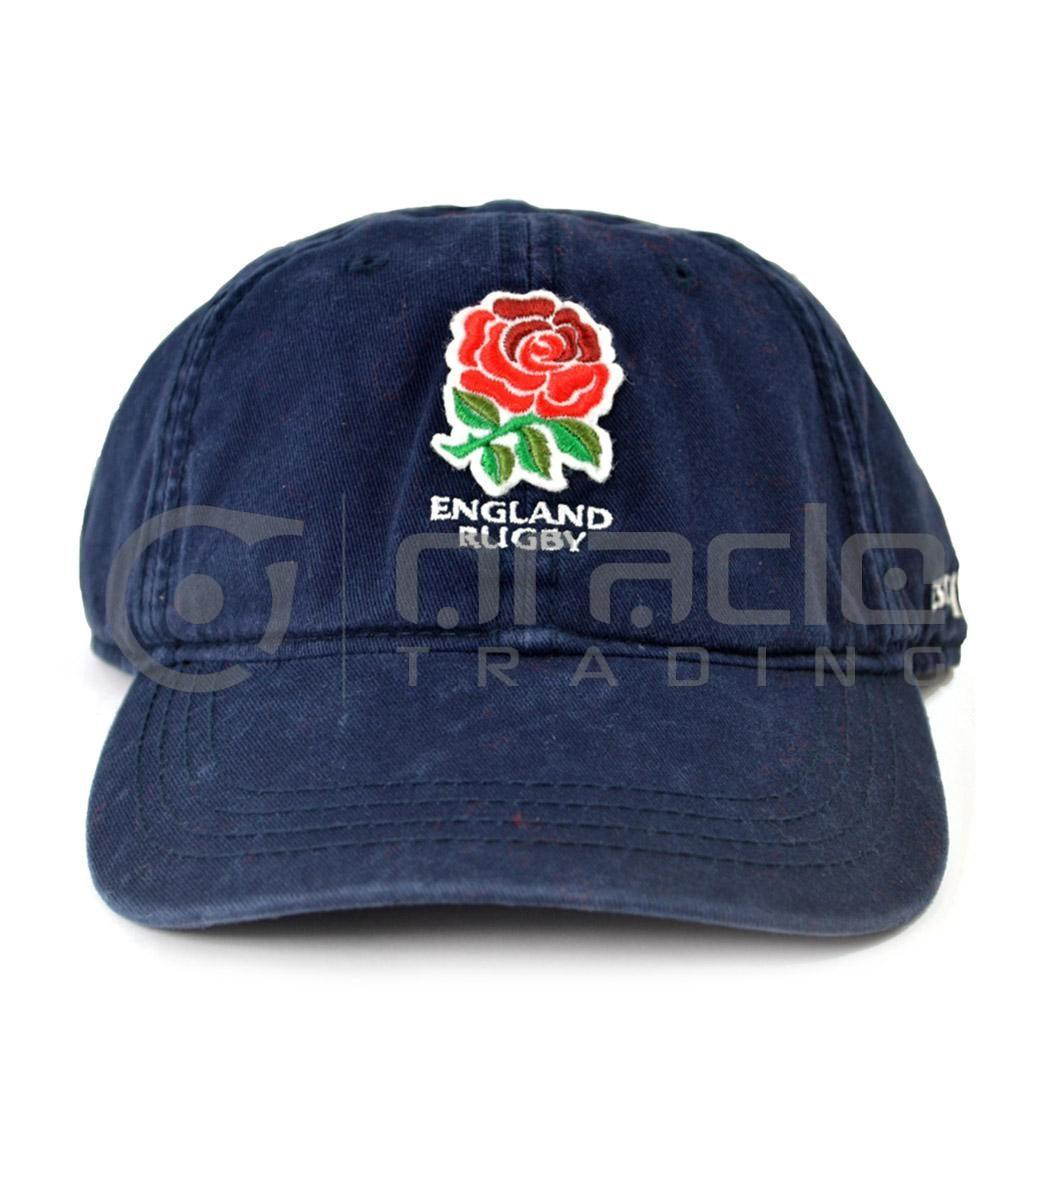 England Rugby Crest Hat (Navy)